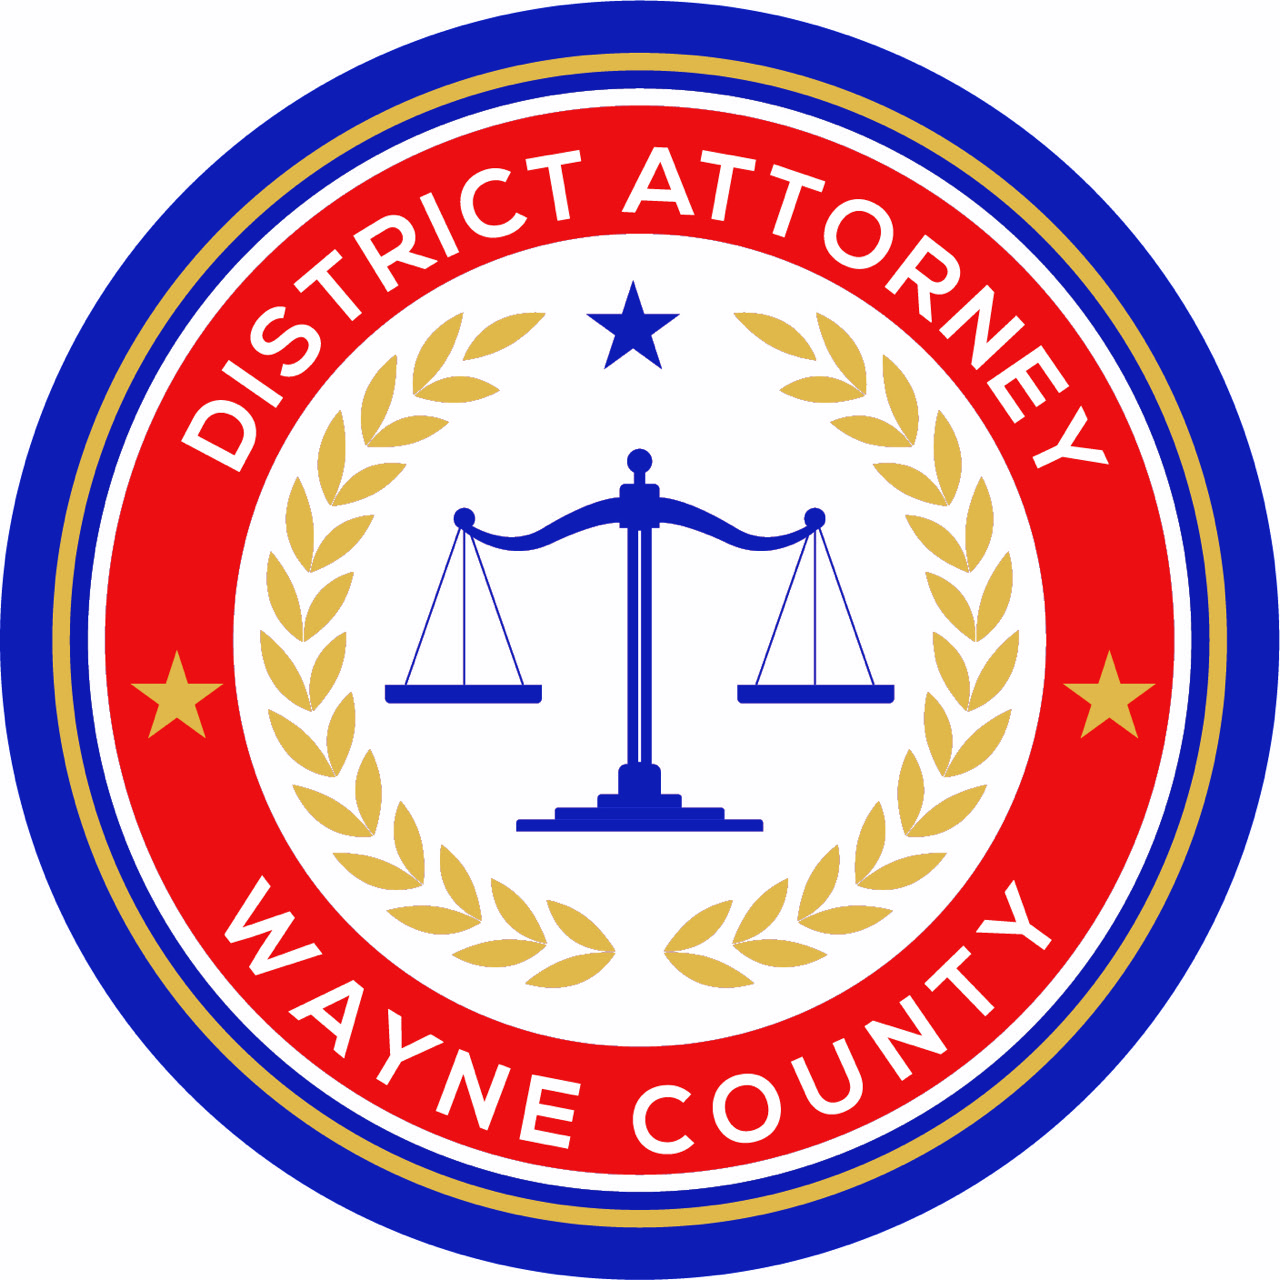 Wayne County District Attorney logo feature the scales of justice.